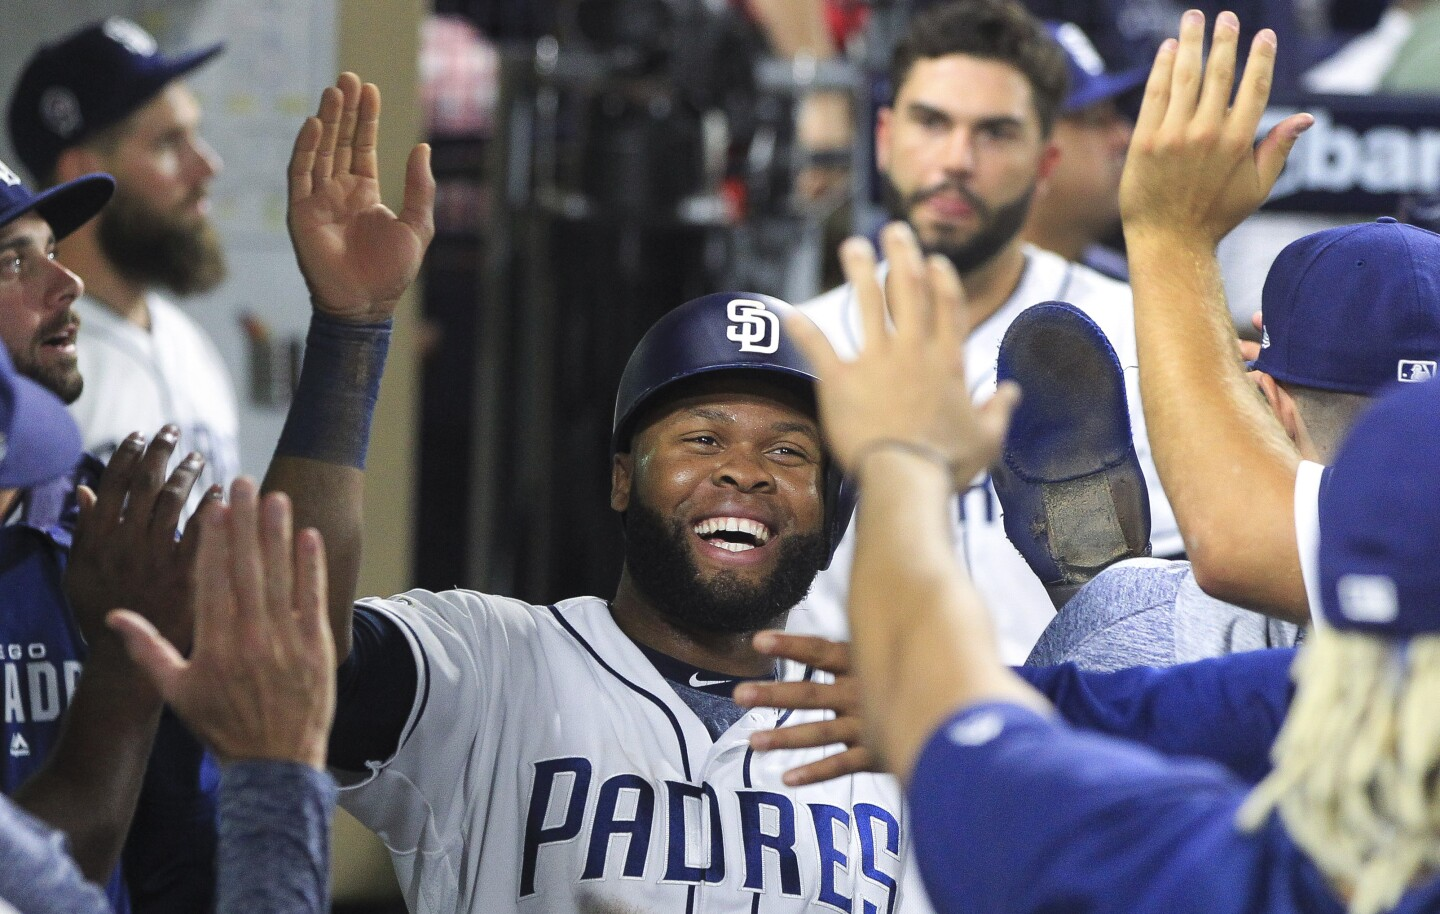 The Padres' Manuel Margot is congratulated in the dugout after he scored on a two-run single by Wil Myers in the seventh inning against the Cubs at Petco Park on Wednesday , September 11, 2019 in San Diego, California.